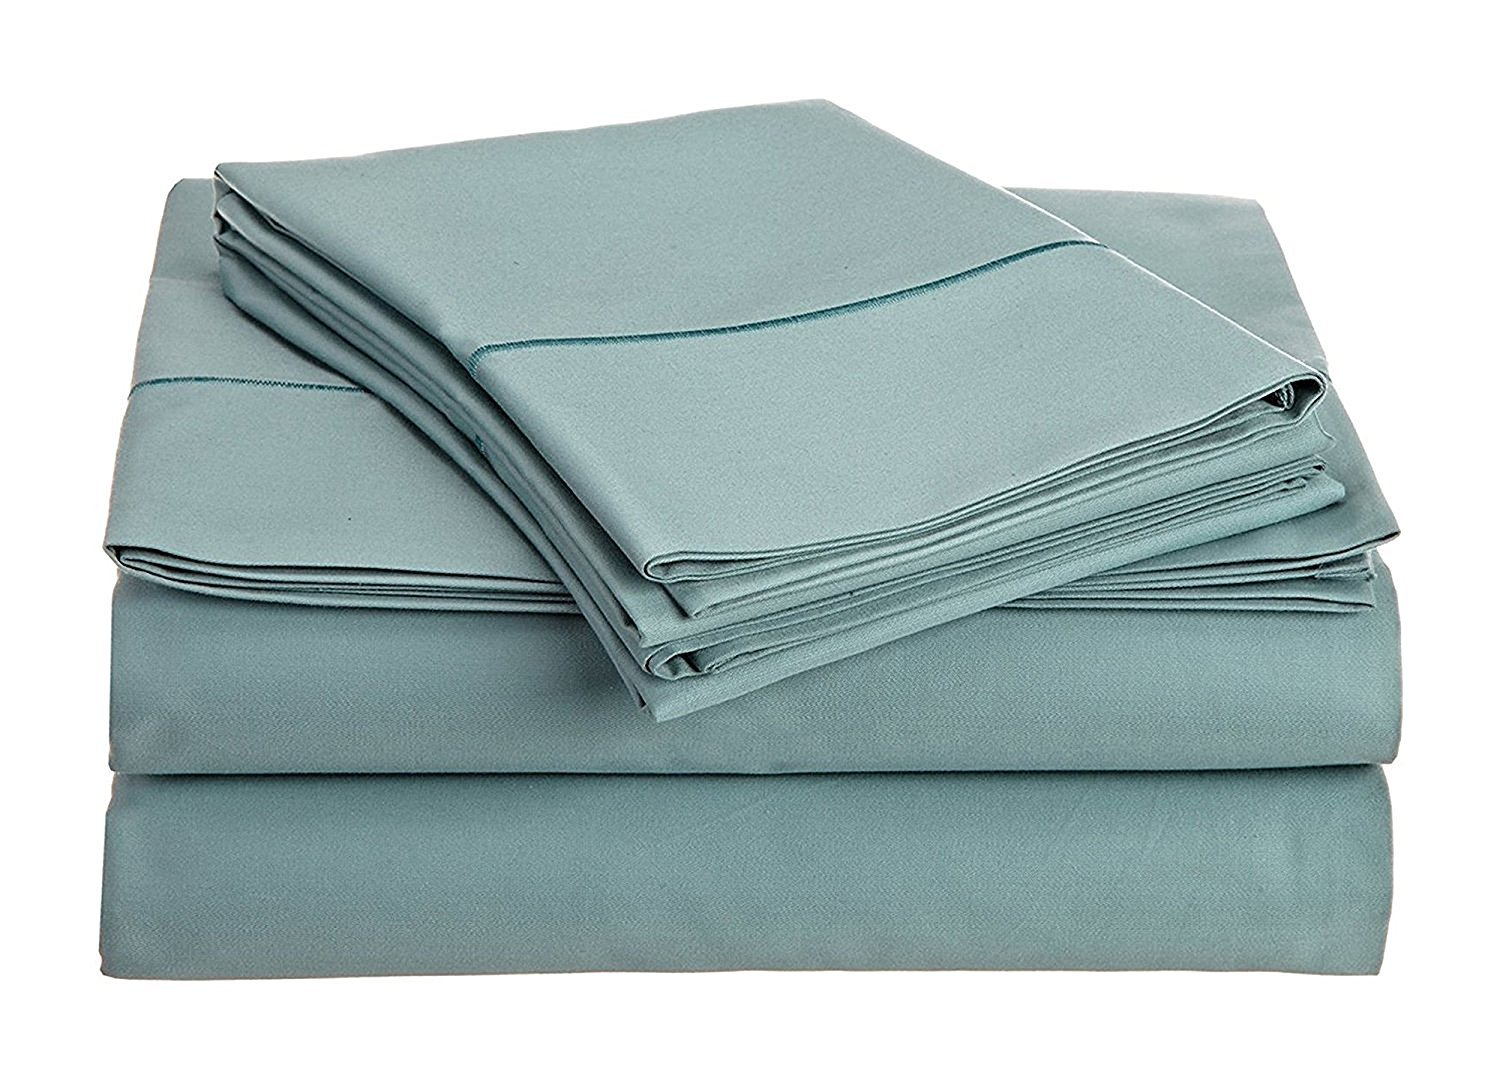 Sound Sleeping 4-Piece Brushed Microfiber Bed Sheet Set - Wrinkle - Fade - Stain Resistant - Hypoallergenic - Light Blue, Full